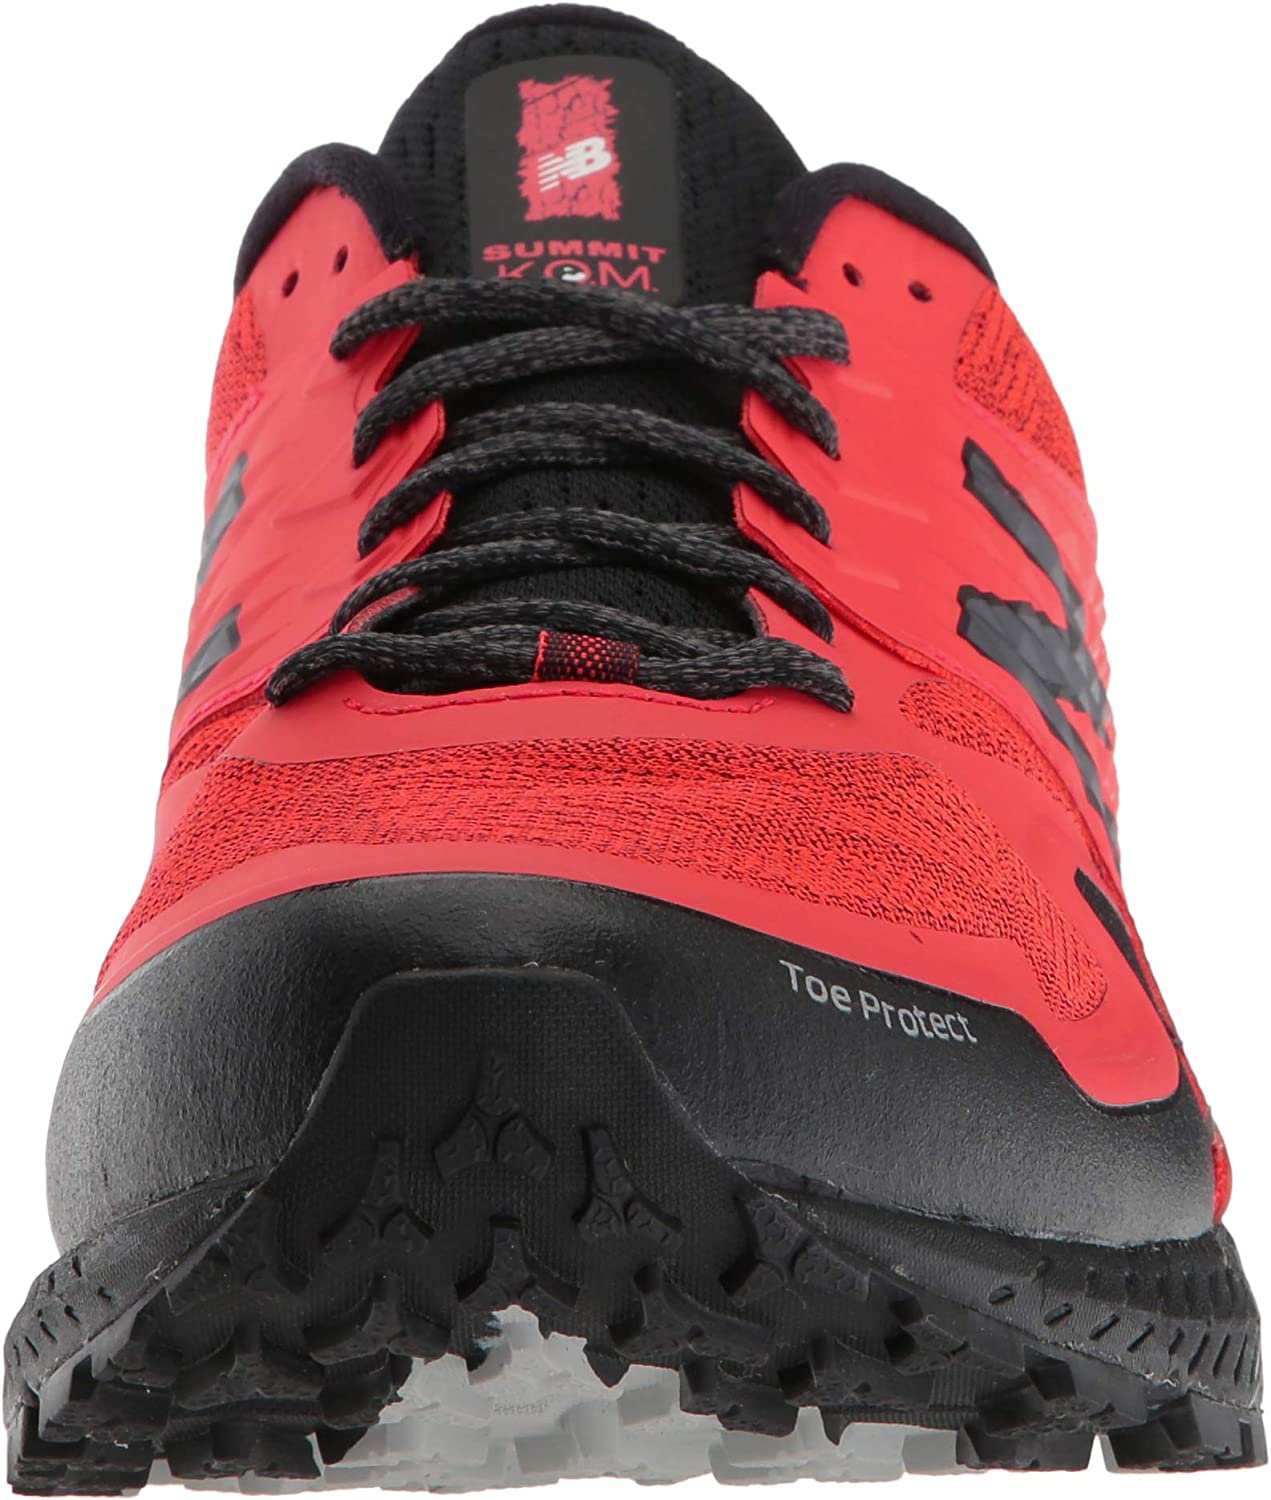 New Balance Men s Summit K.o.m. V1 Trail Running Shoe